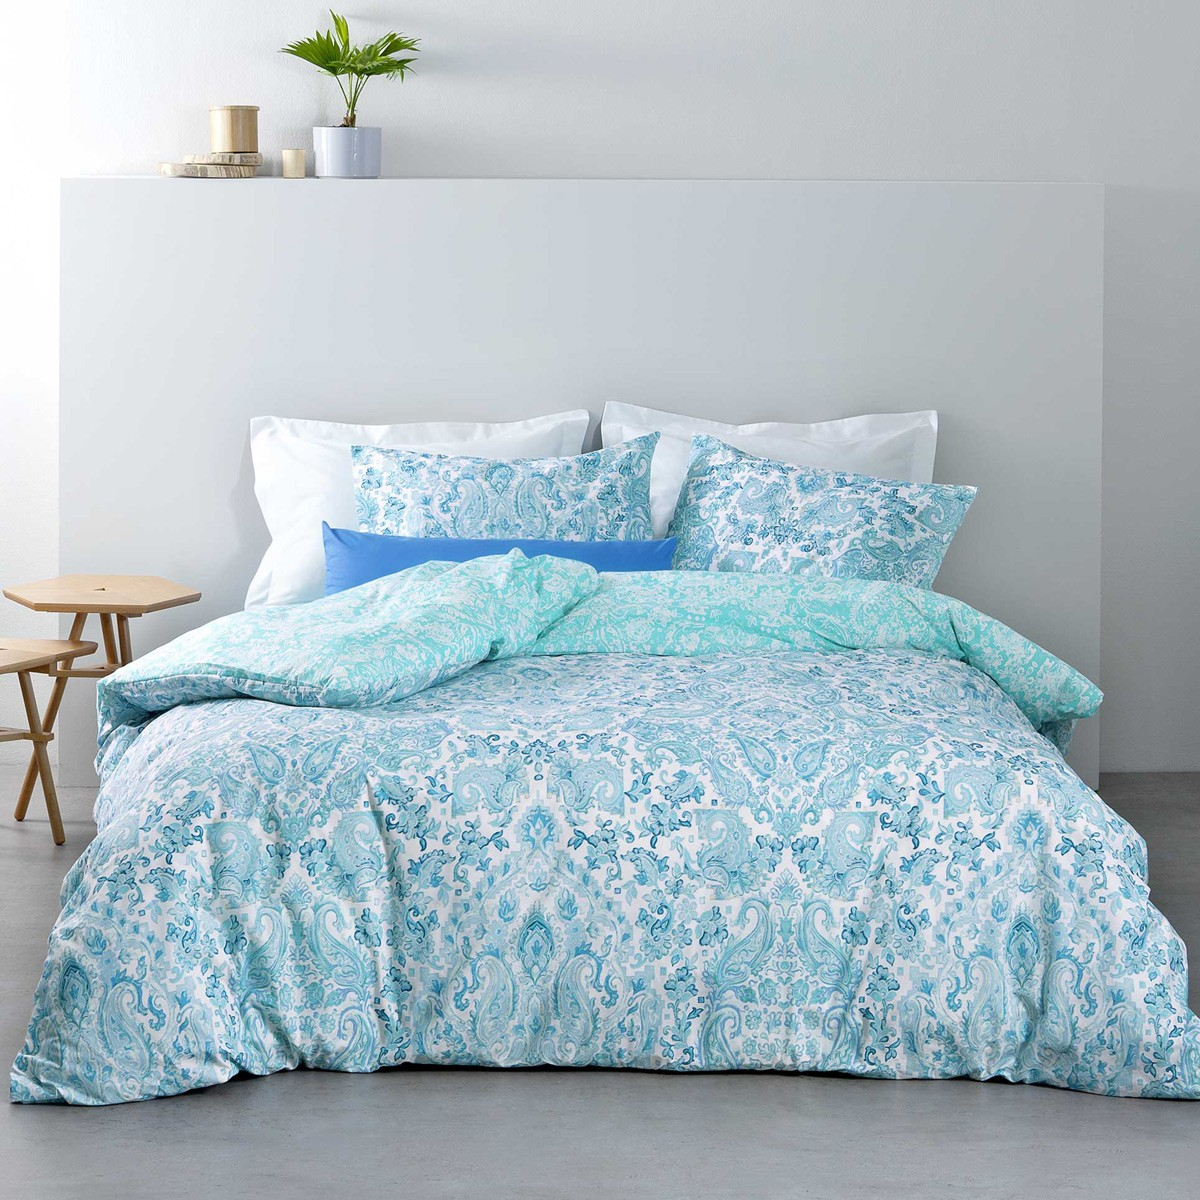 Κουβερλί Μονό Nima Bed Linen Ananta Blue